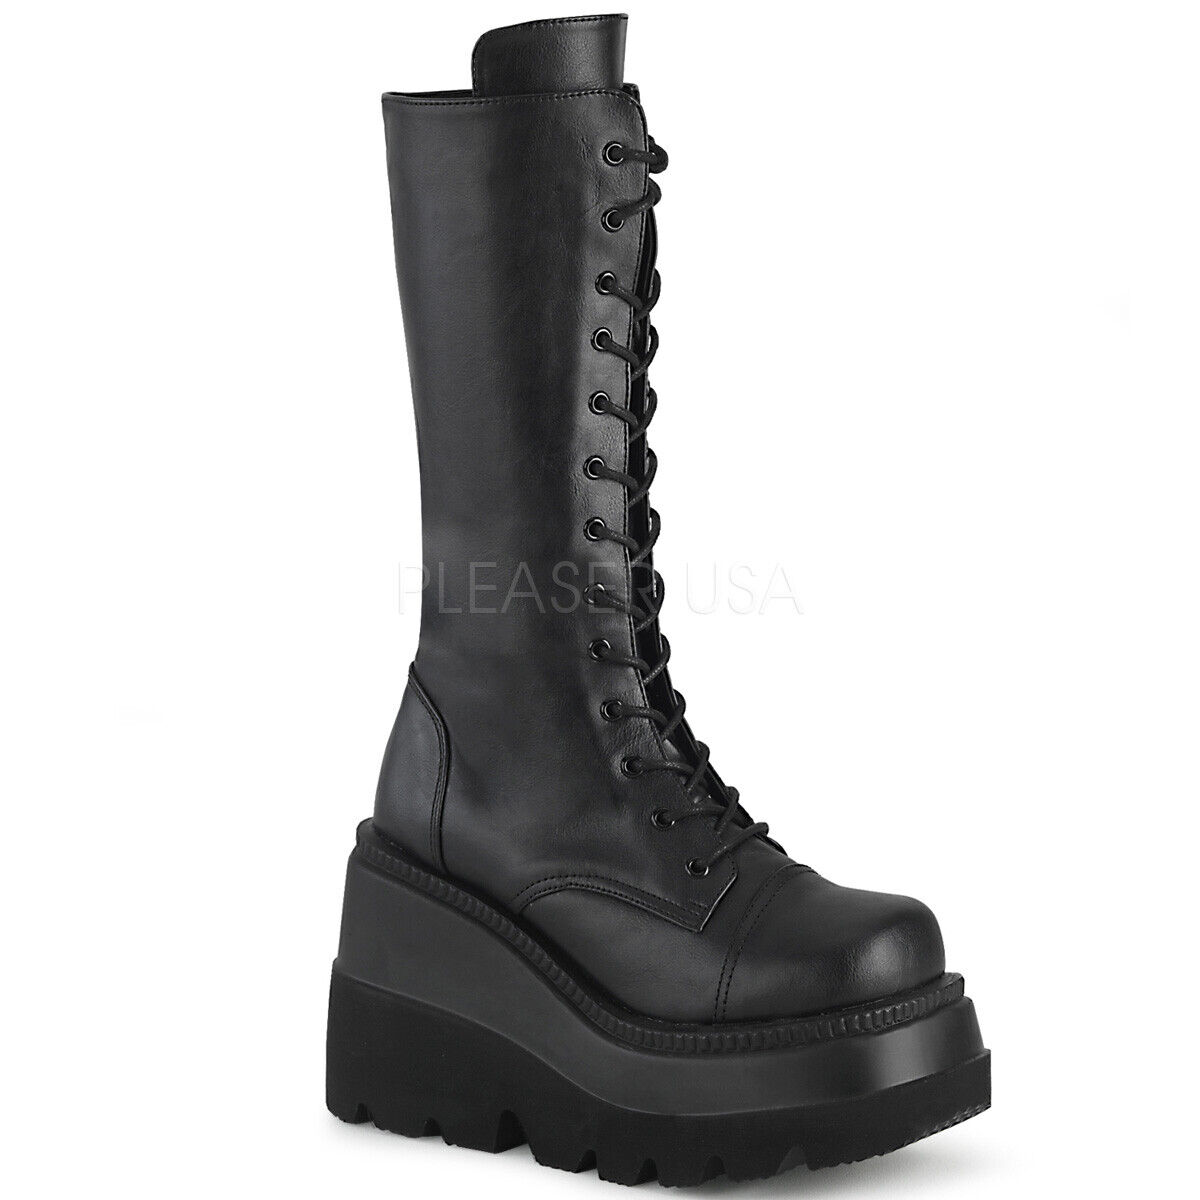 PLEASER Demonia Shaker-72 4 1 2  Wedge Platform Lace-Up Front Mid-Calf Stiefel